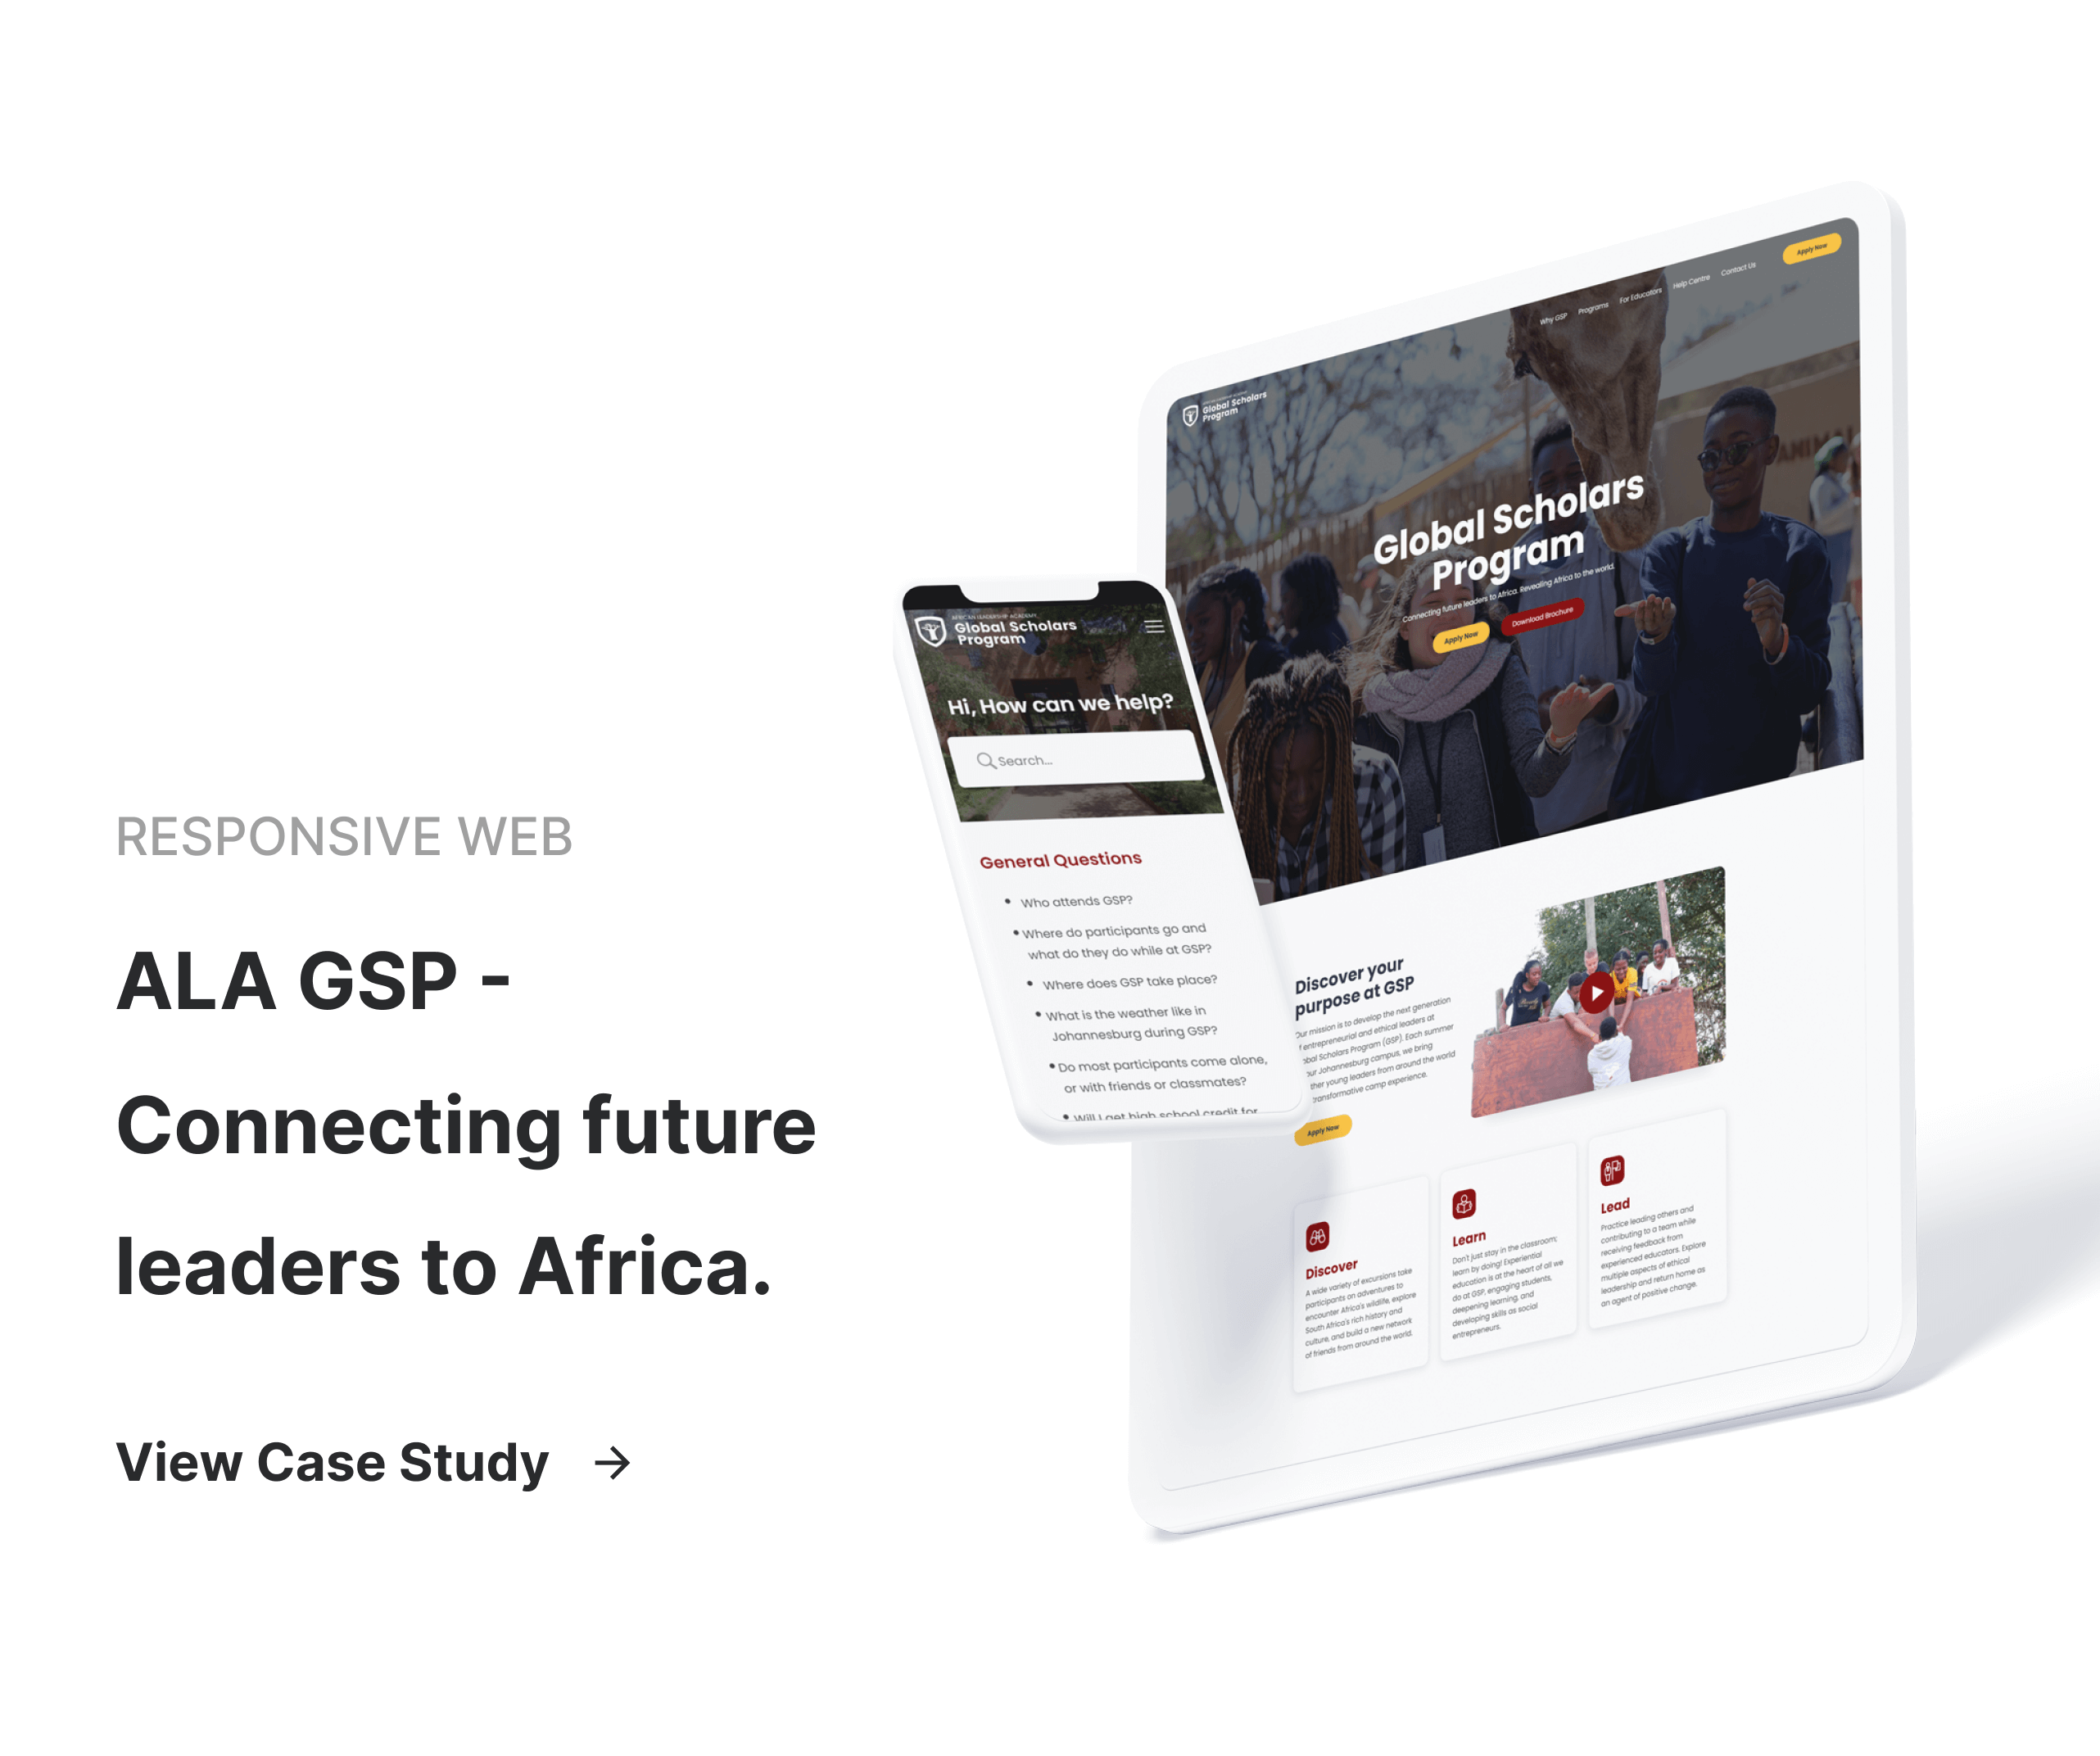 ALA GSP - Connecting future leaders to Africa.